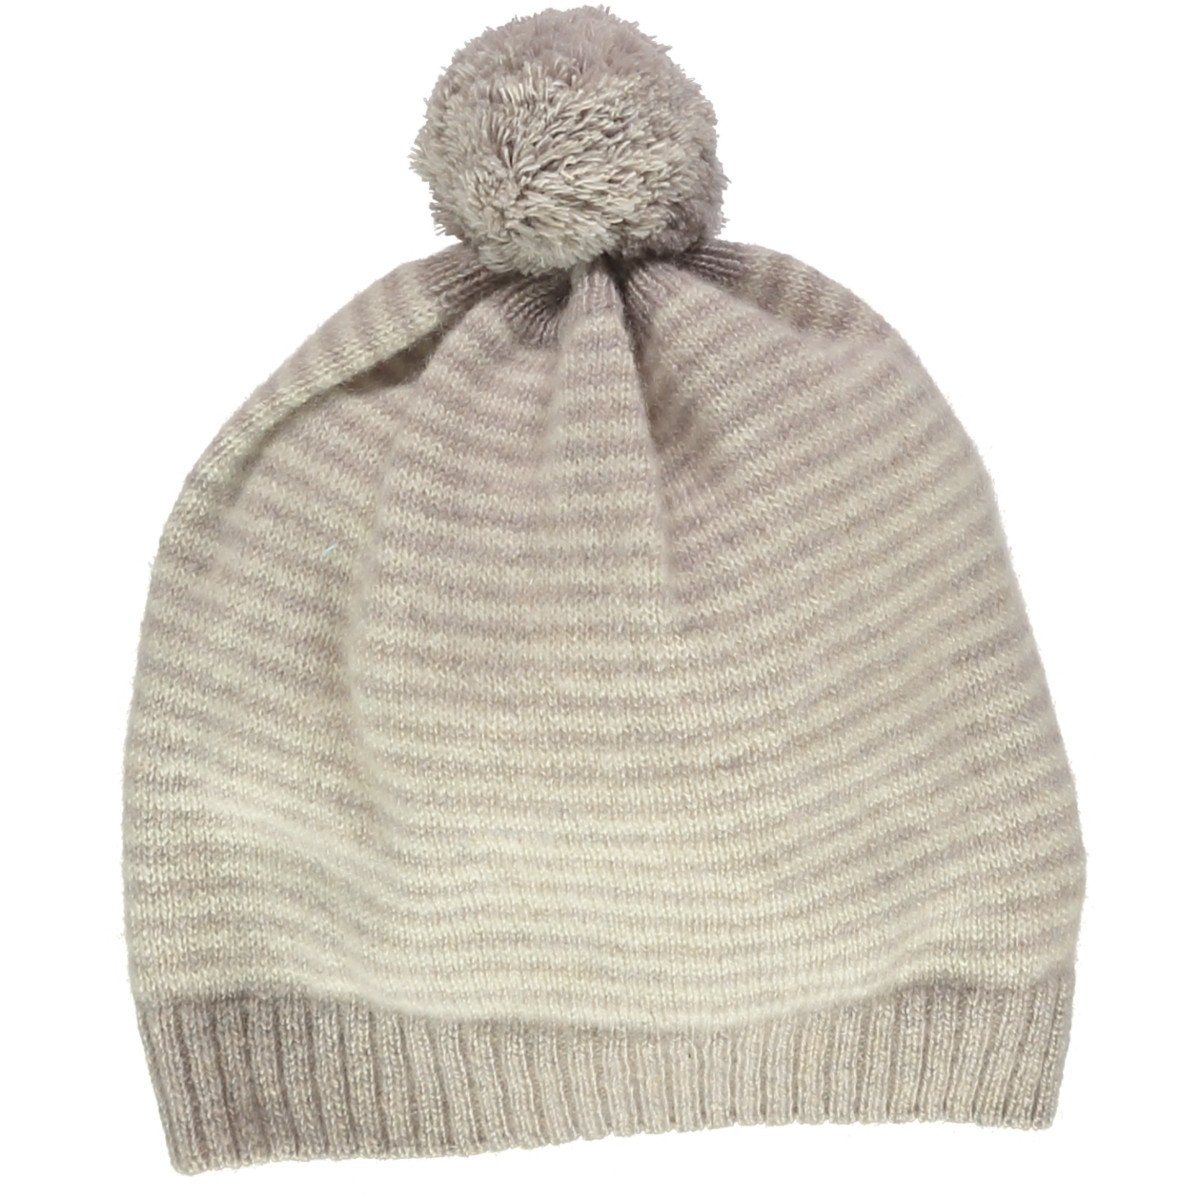 Olivier Baby   Kids Mushroom with Cream Cashmere Stripe Hat  6682a235b3e